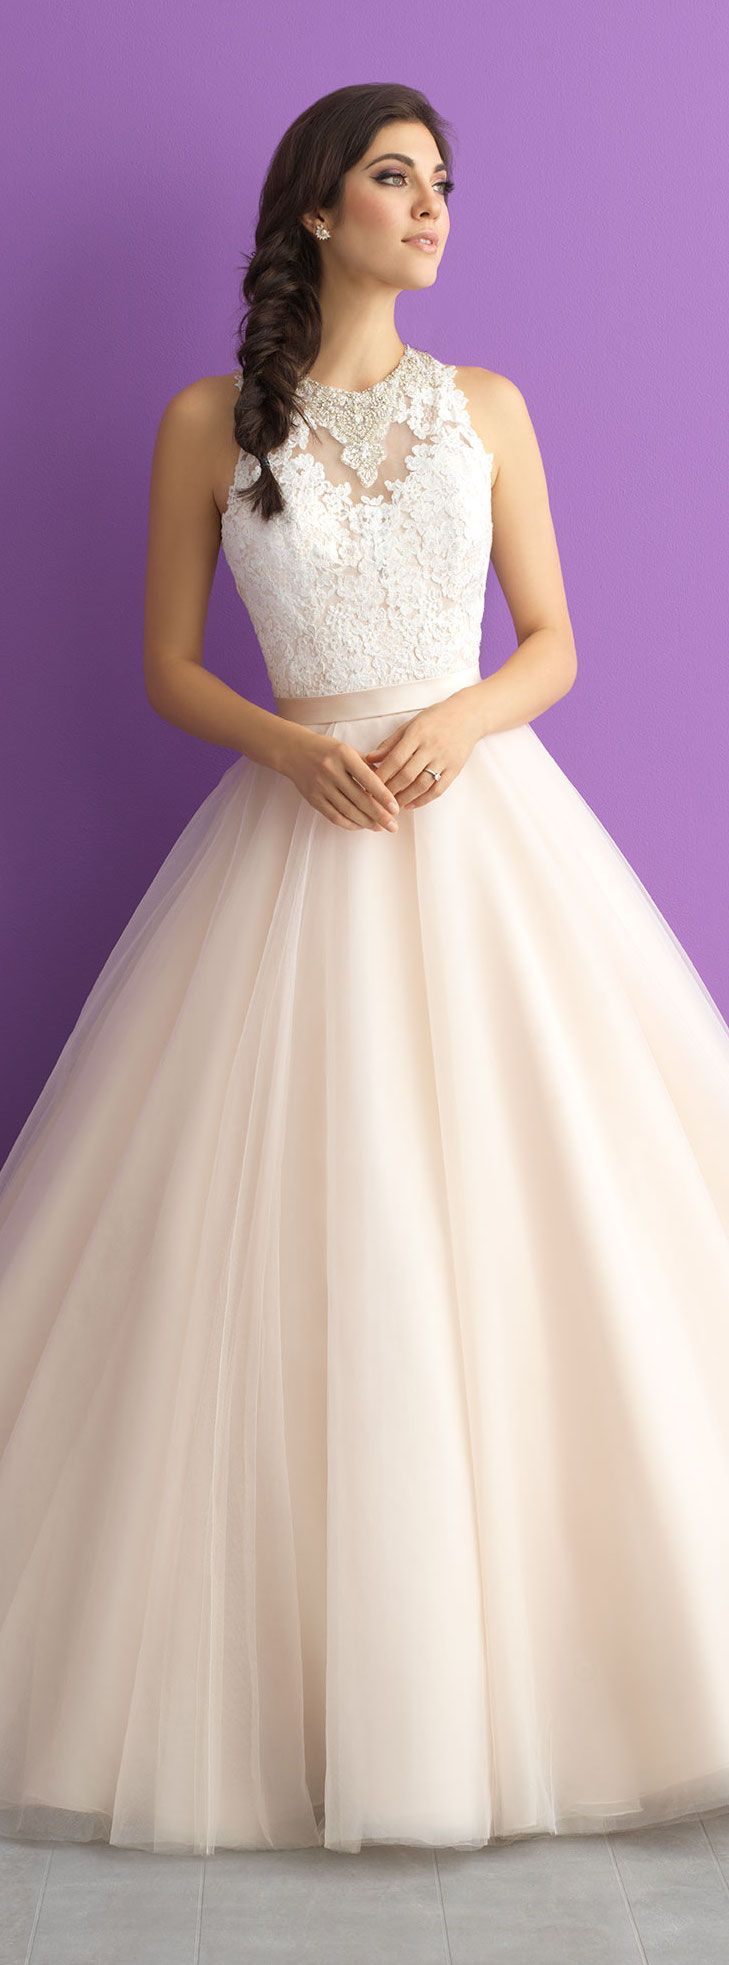 Allure Romance Wedding Dress With a jewel encrusted